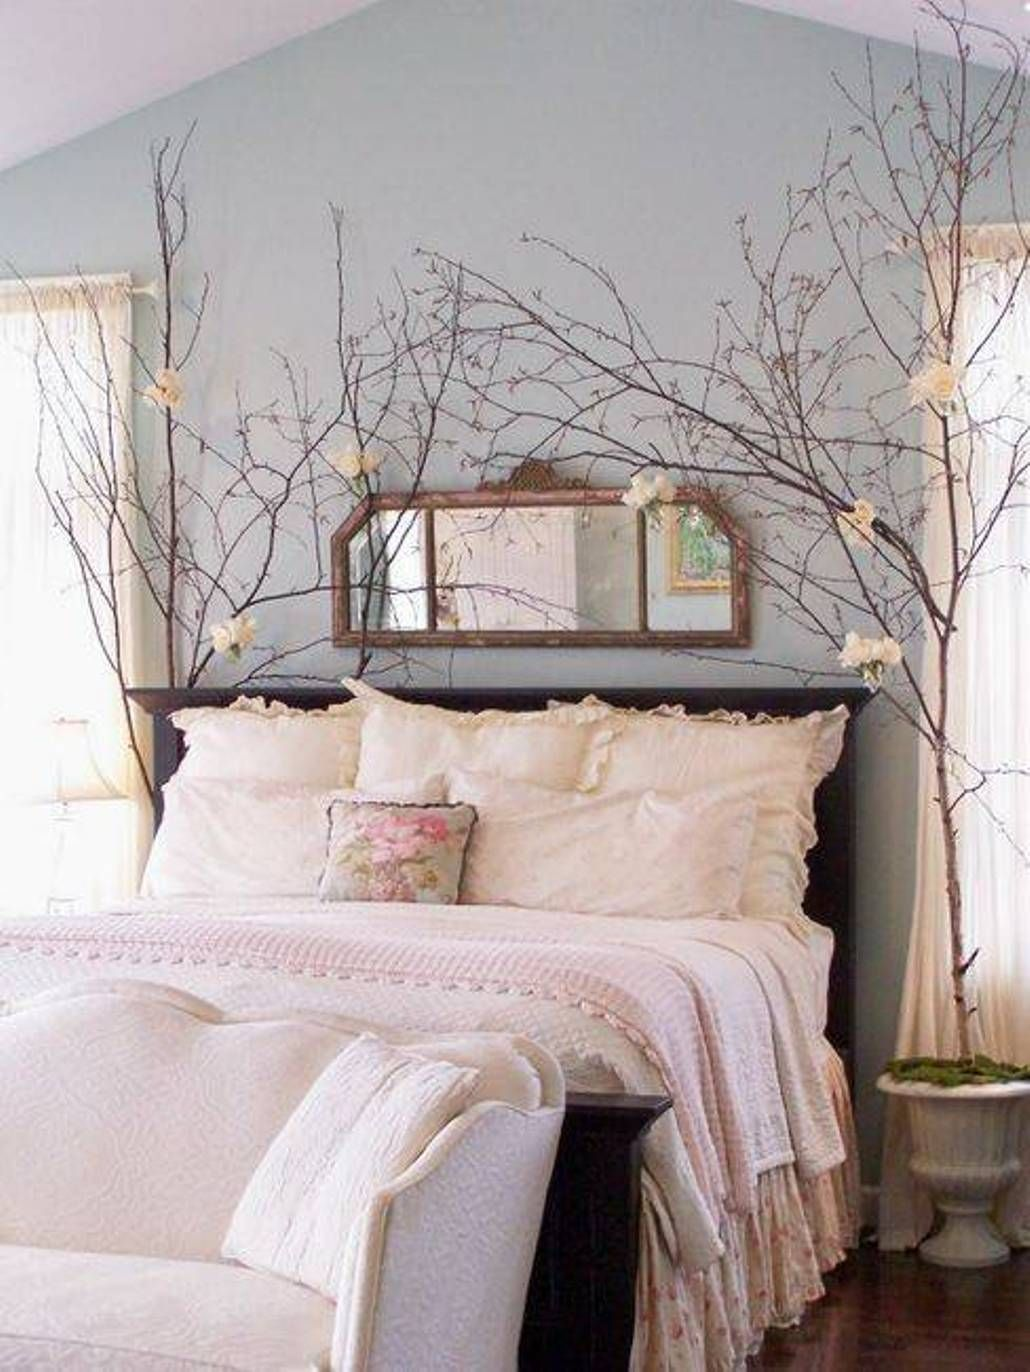 Home design and decor branch decor ideas for home bedrom with